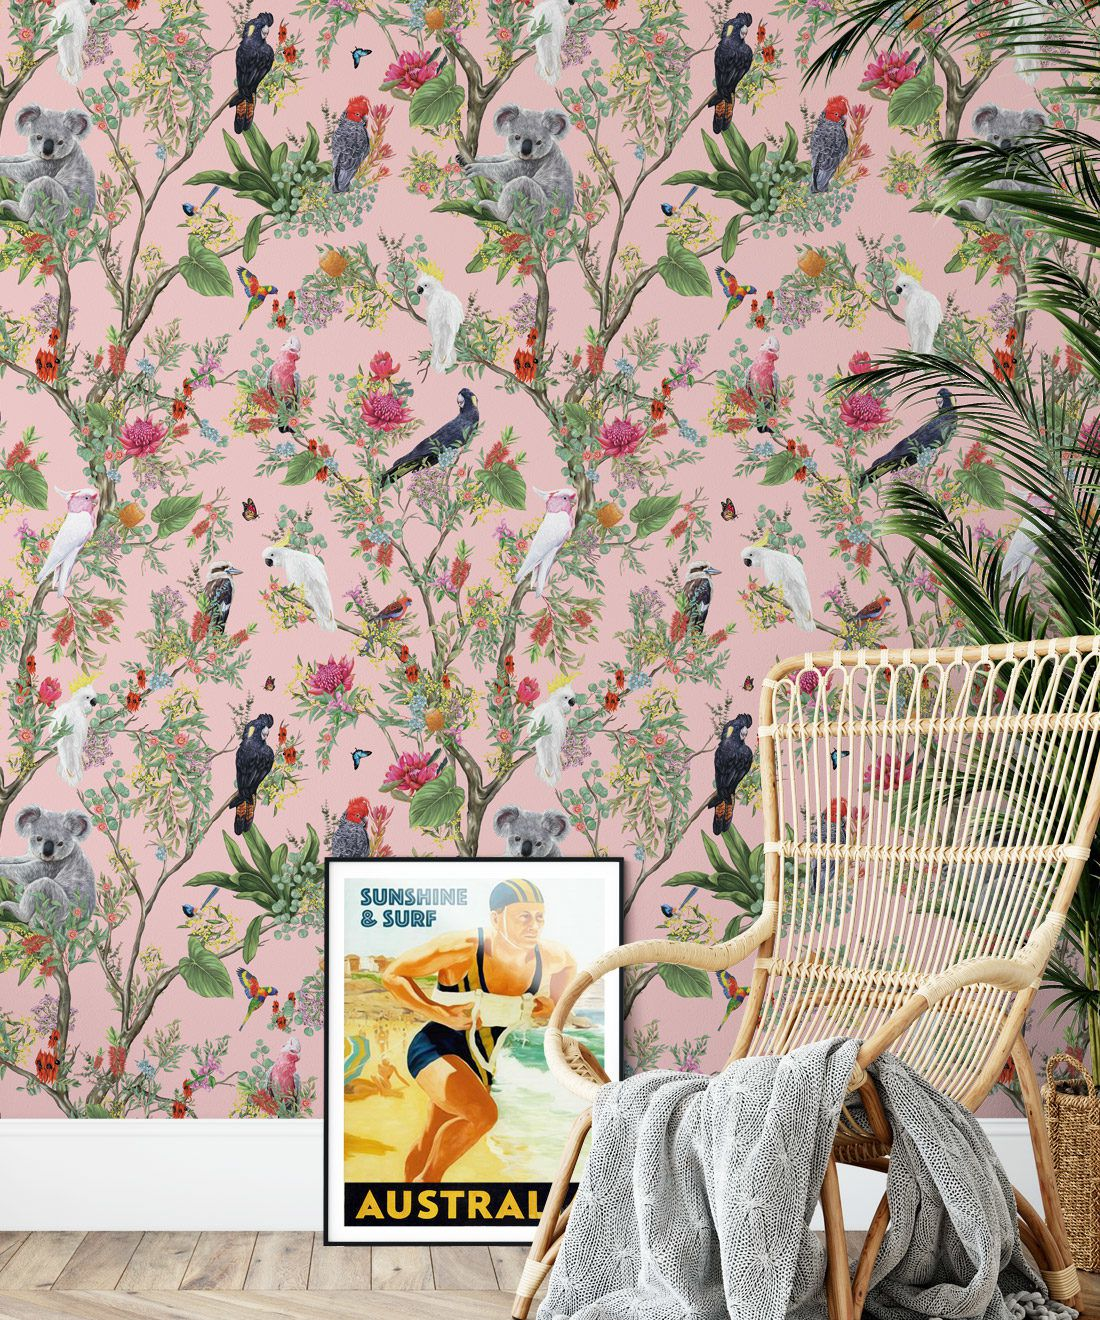 Australia Wallpaper • Cockatoos, Koalas, Parrots, Finches • Milton & King USA • Coral Wallpaper Insitu